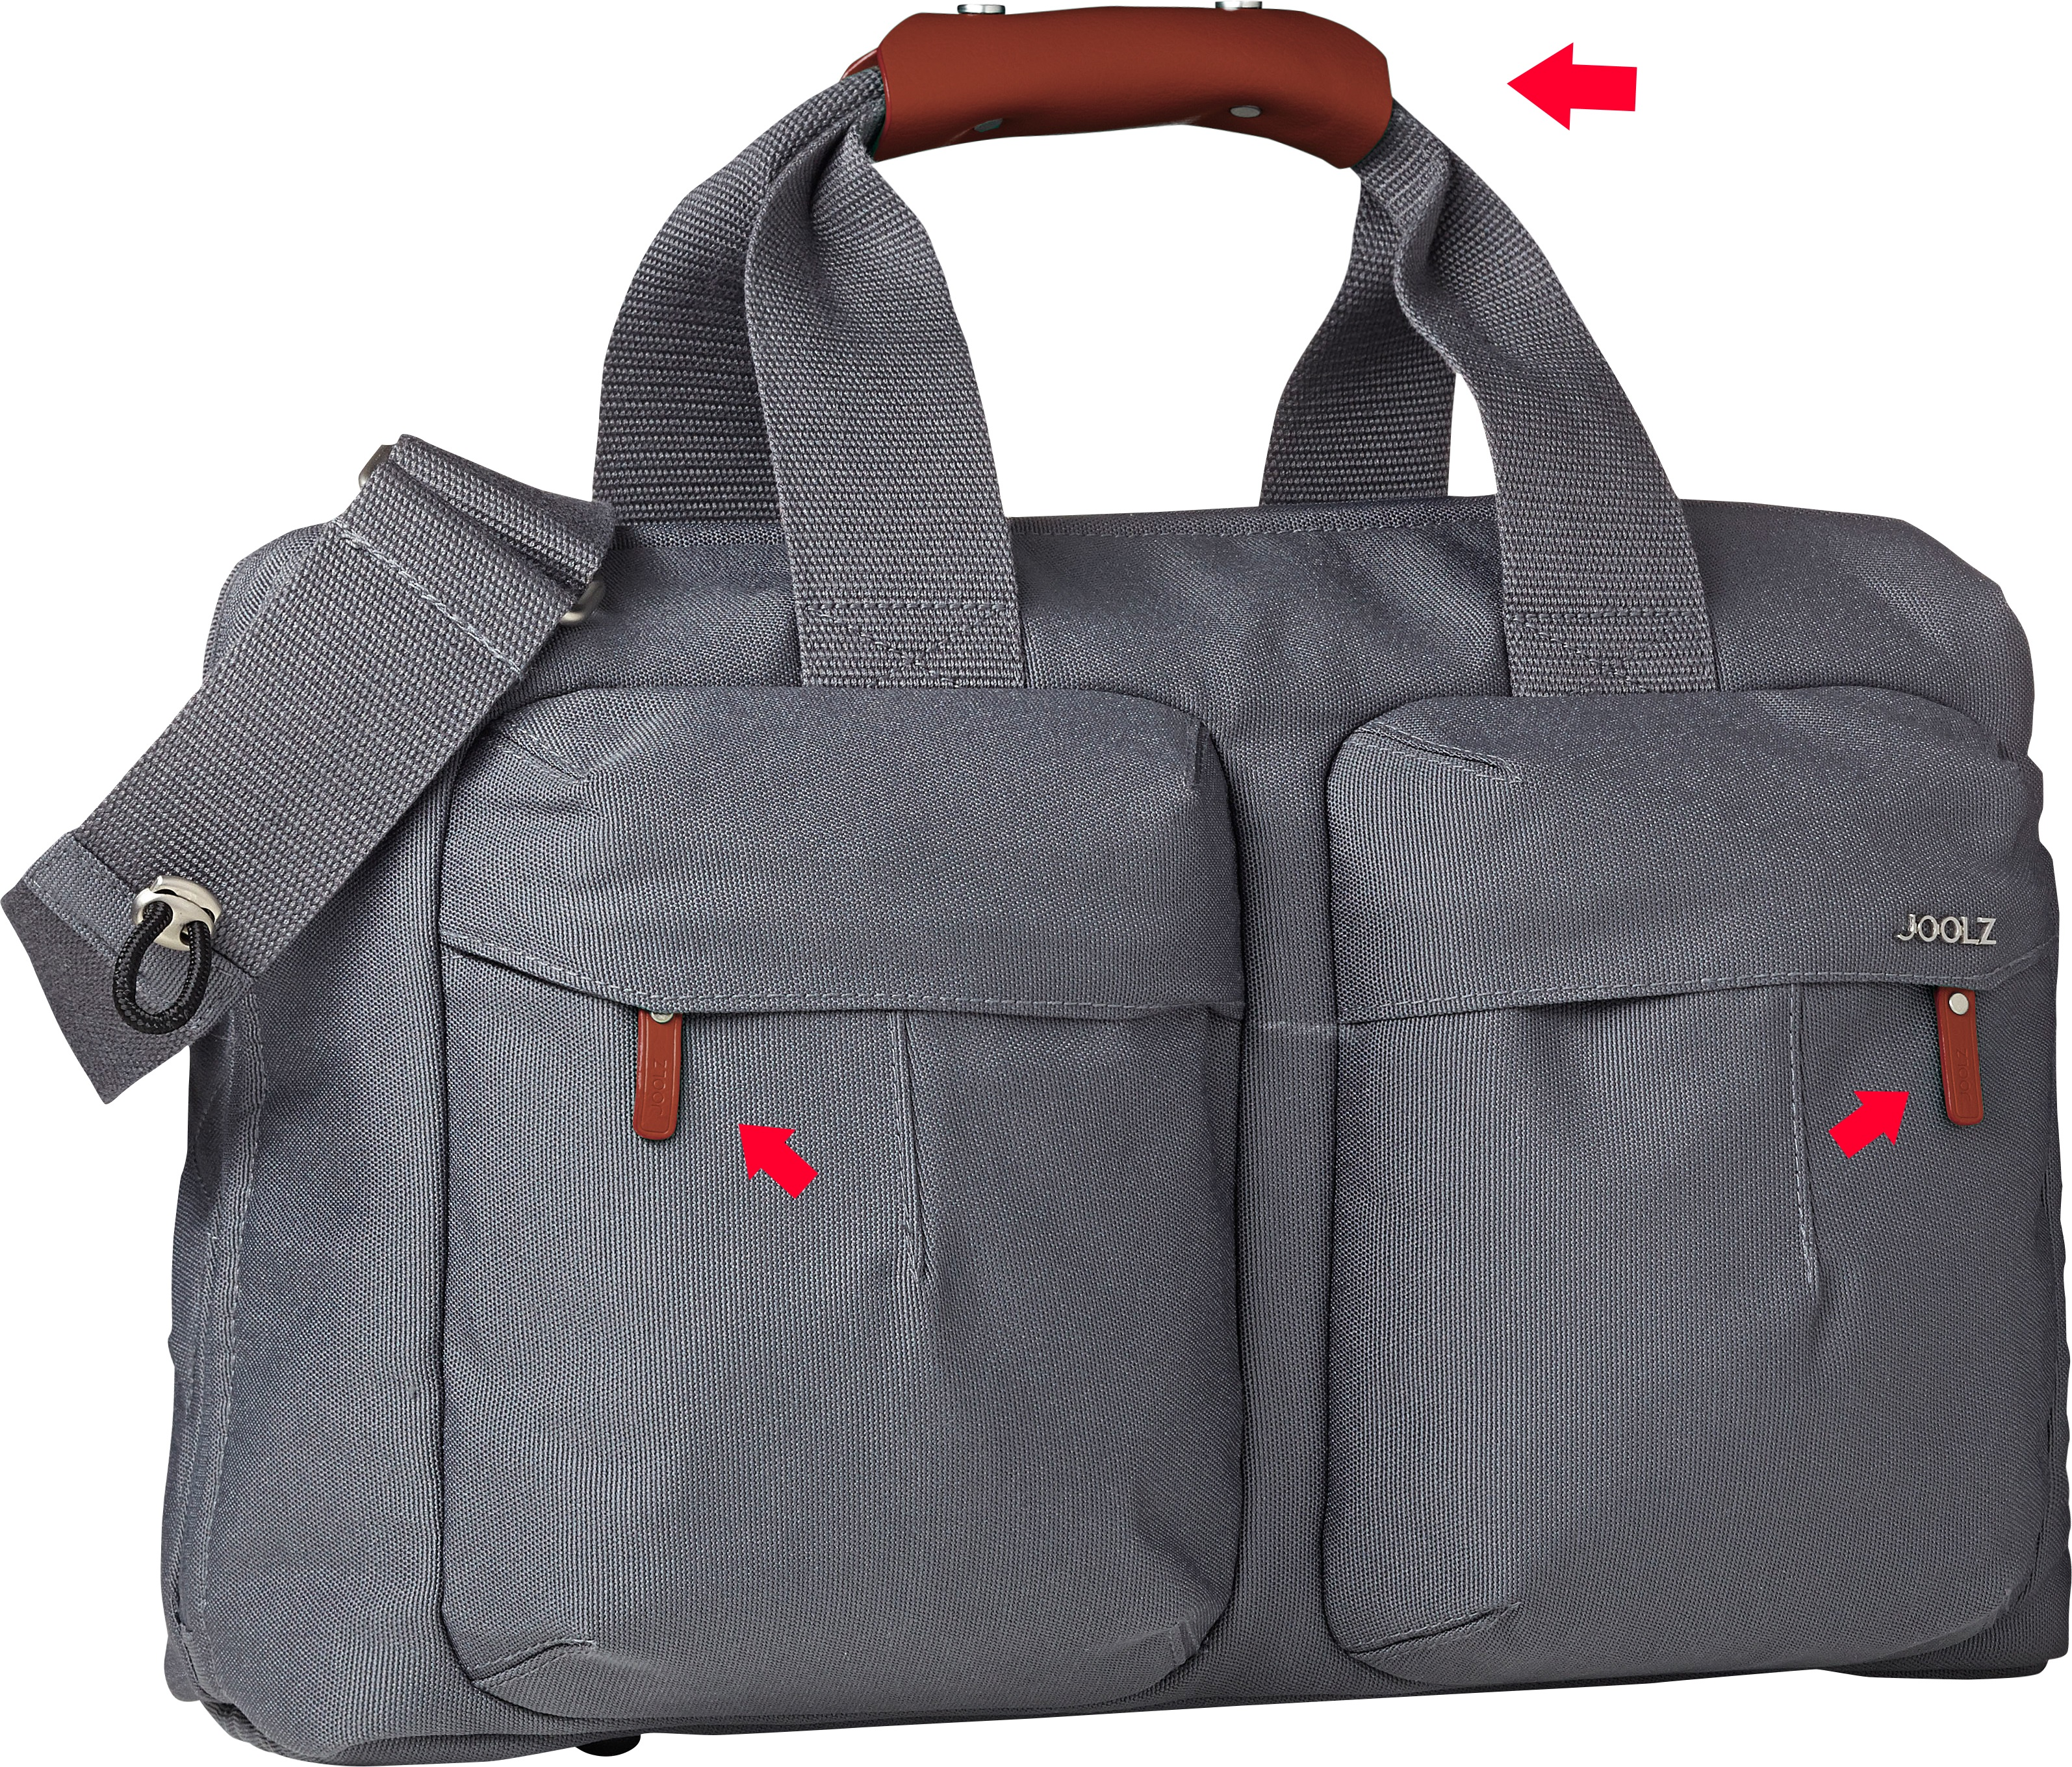 NurseryBag12_Grey_Tangerinered_HR.jpg